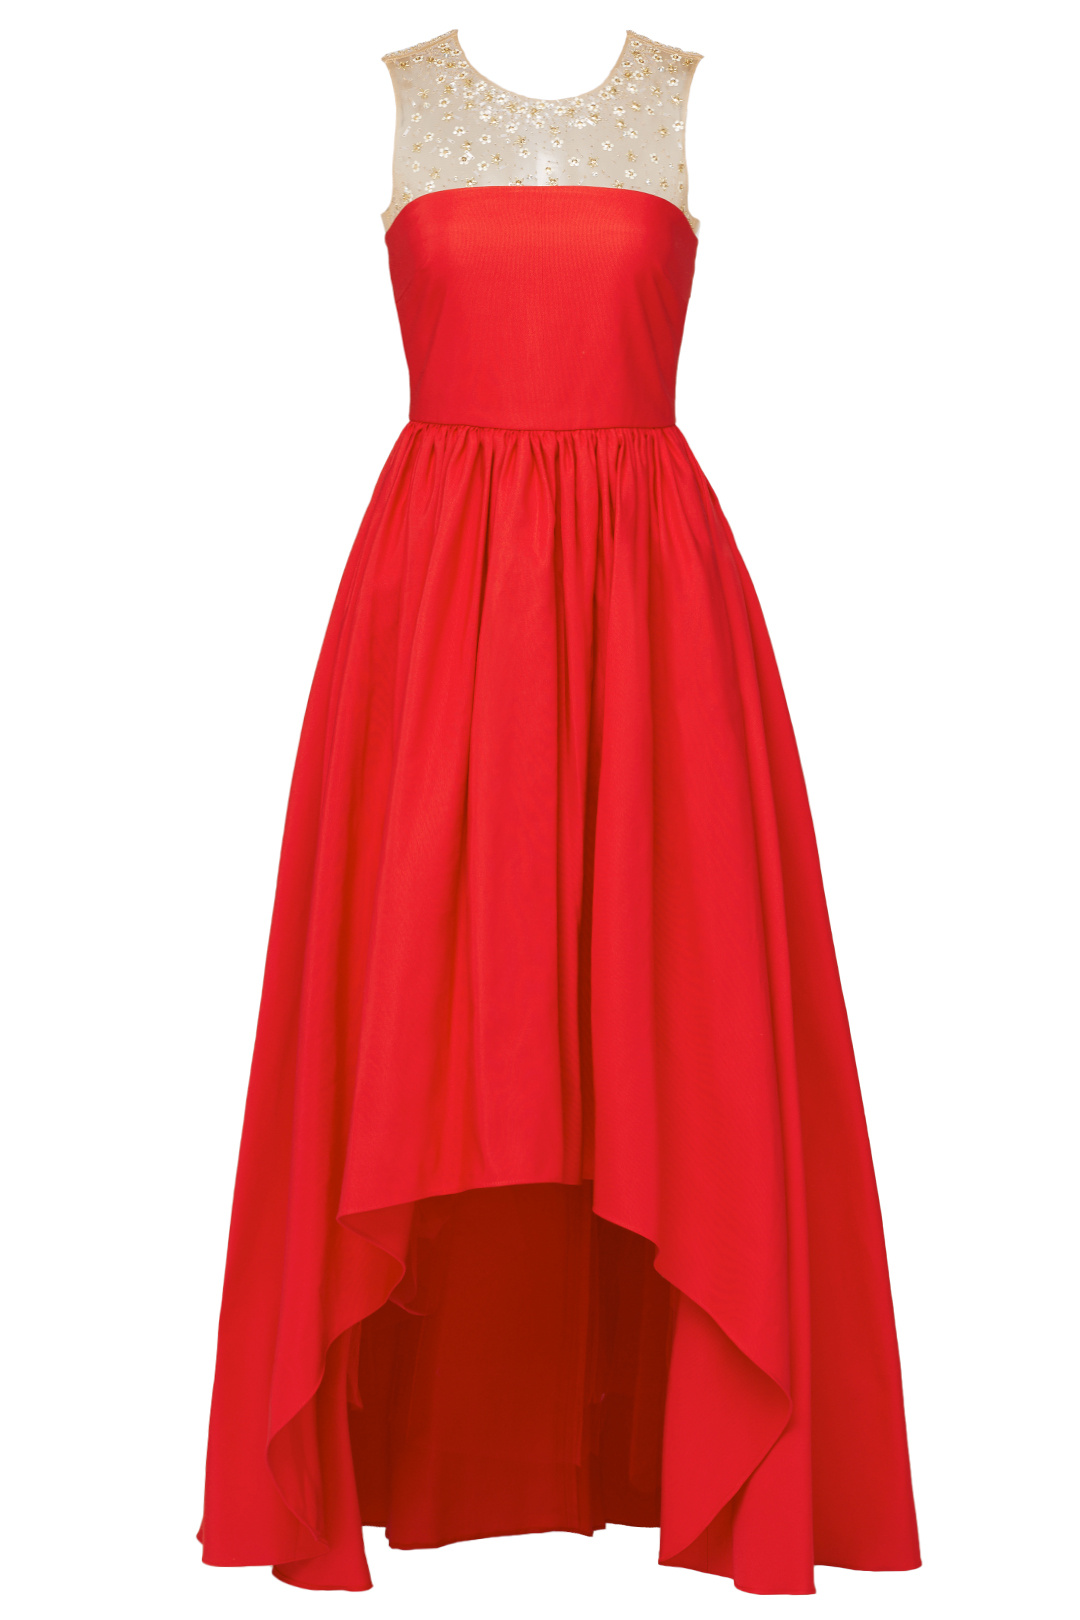 Marchesa Notte Red.jpg